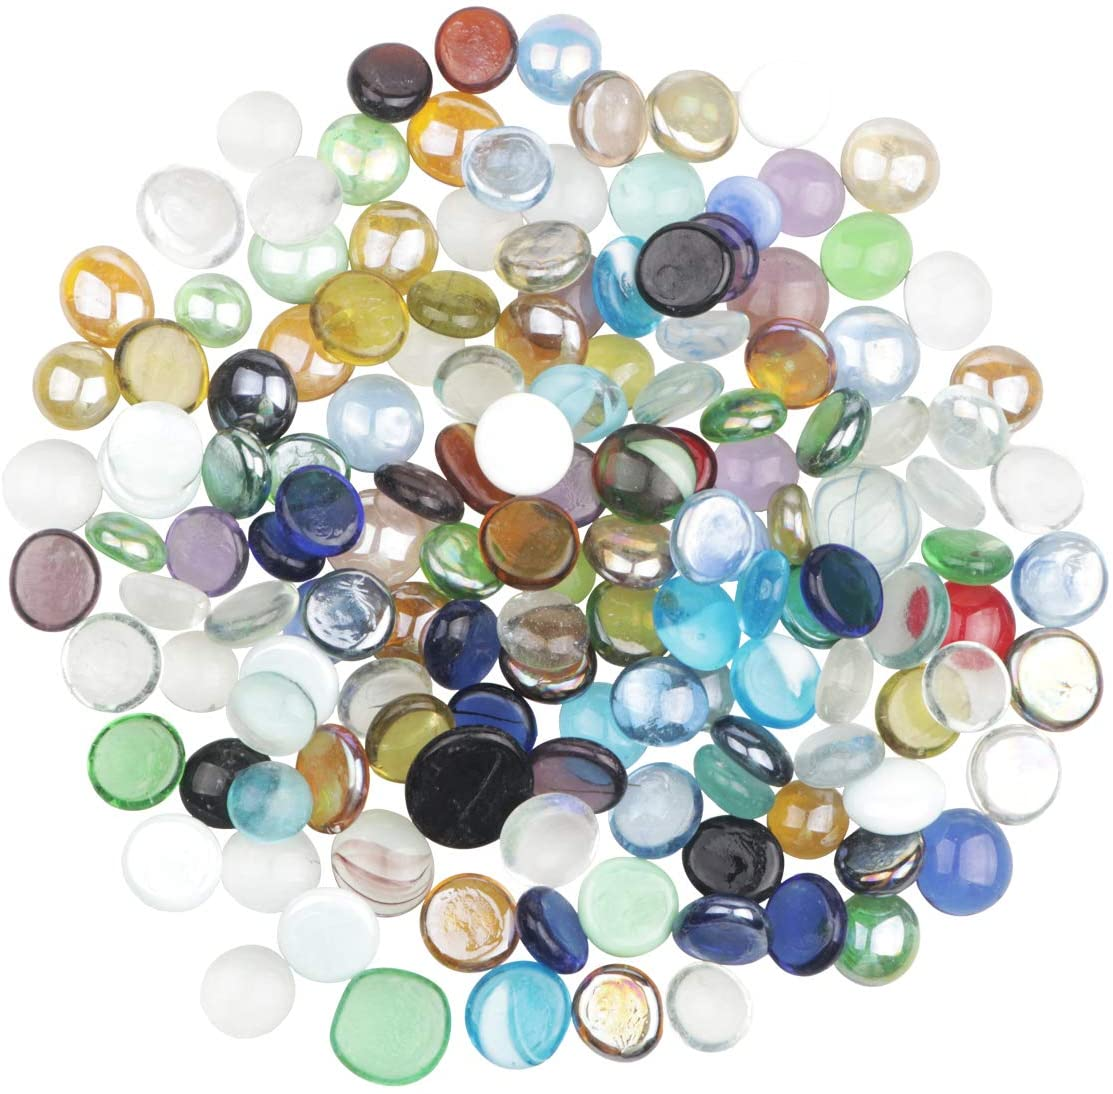 YIYA Mixed Colour Max 52% OFF Flat Marble Decorative Elegant for Gems Ho Glass Beads